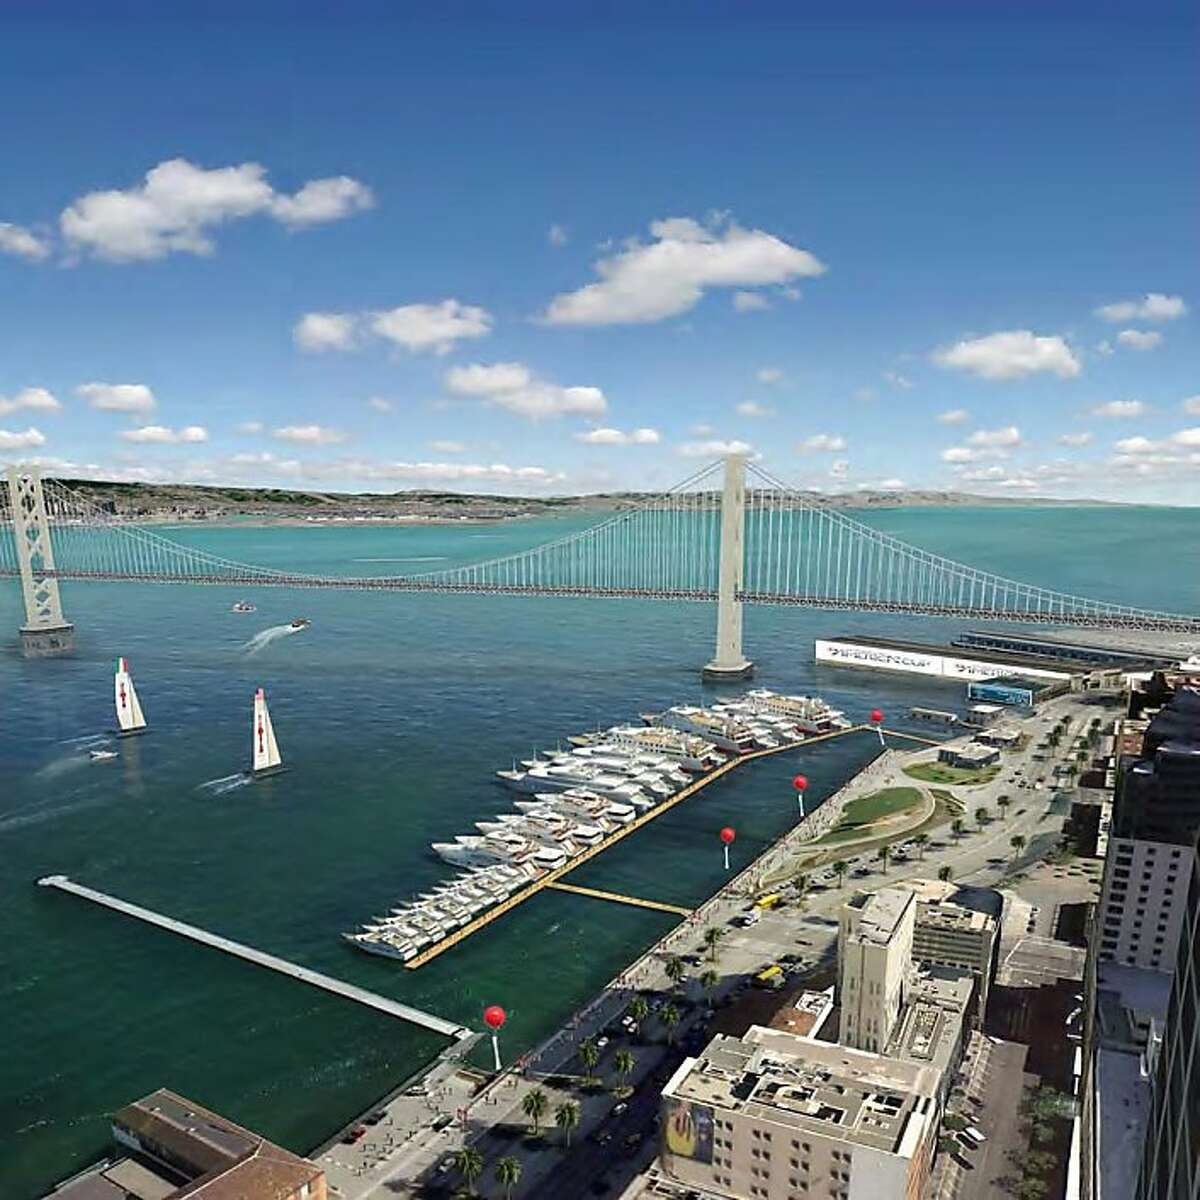 This illustration from the draft Environmental Impact report depicts the proposed spectator berthing facilities for the open water between Piers 14 and 22 1/2 in San Francisco. Illistration courtesy of AECOM Ran on: 08-22-2011 An illustration from the draft environmental impact report depicts proposed berthing facilities for Americas Cup spectators yachts between Piers 14 and 22?. Ran on: 08-22-2011 An illustration from the draft environmental impact report depicts proposed berthing facilities for Americas Cup spectators yachts between Piers 14 and 22?.